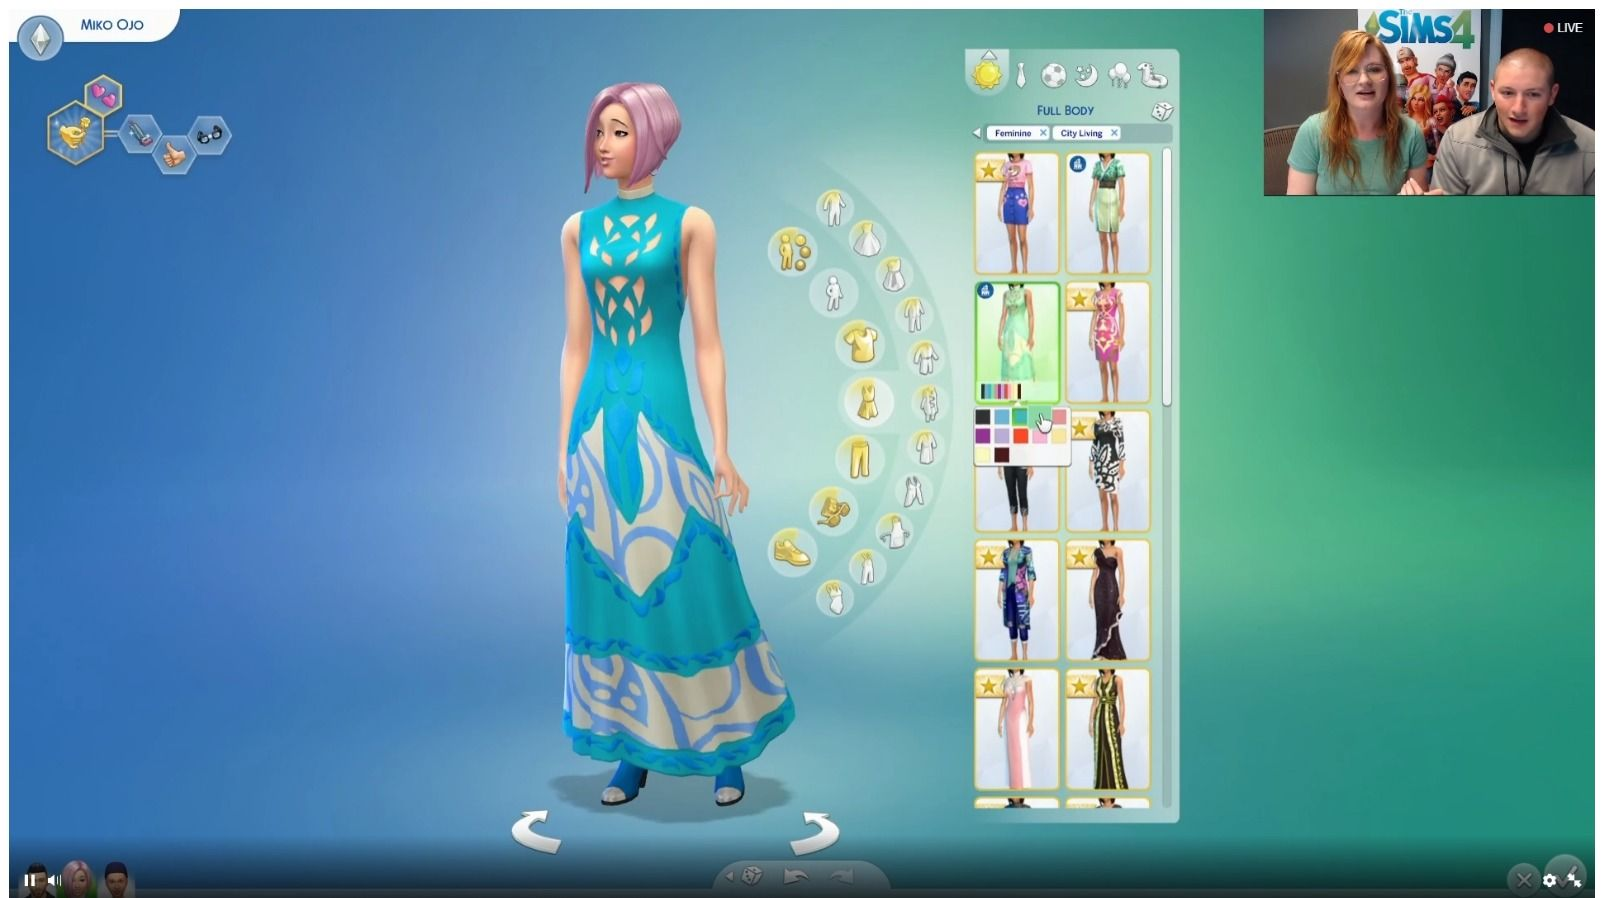 The Sims 4 City Living 105 Cas Screens From The Livestream Sims Community Avec Images Sims Sims 3